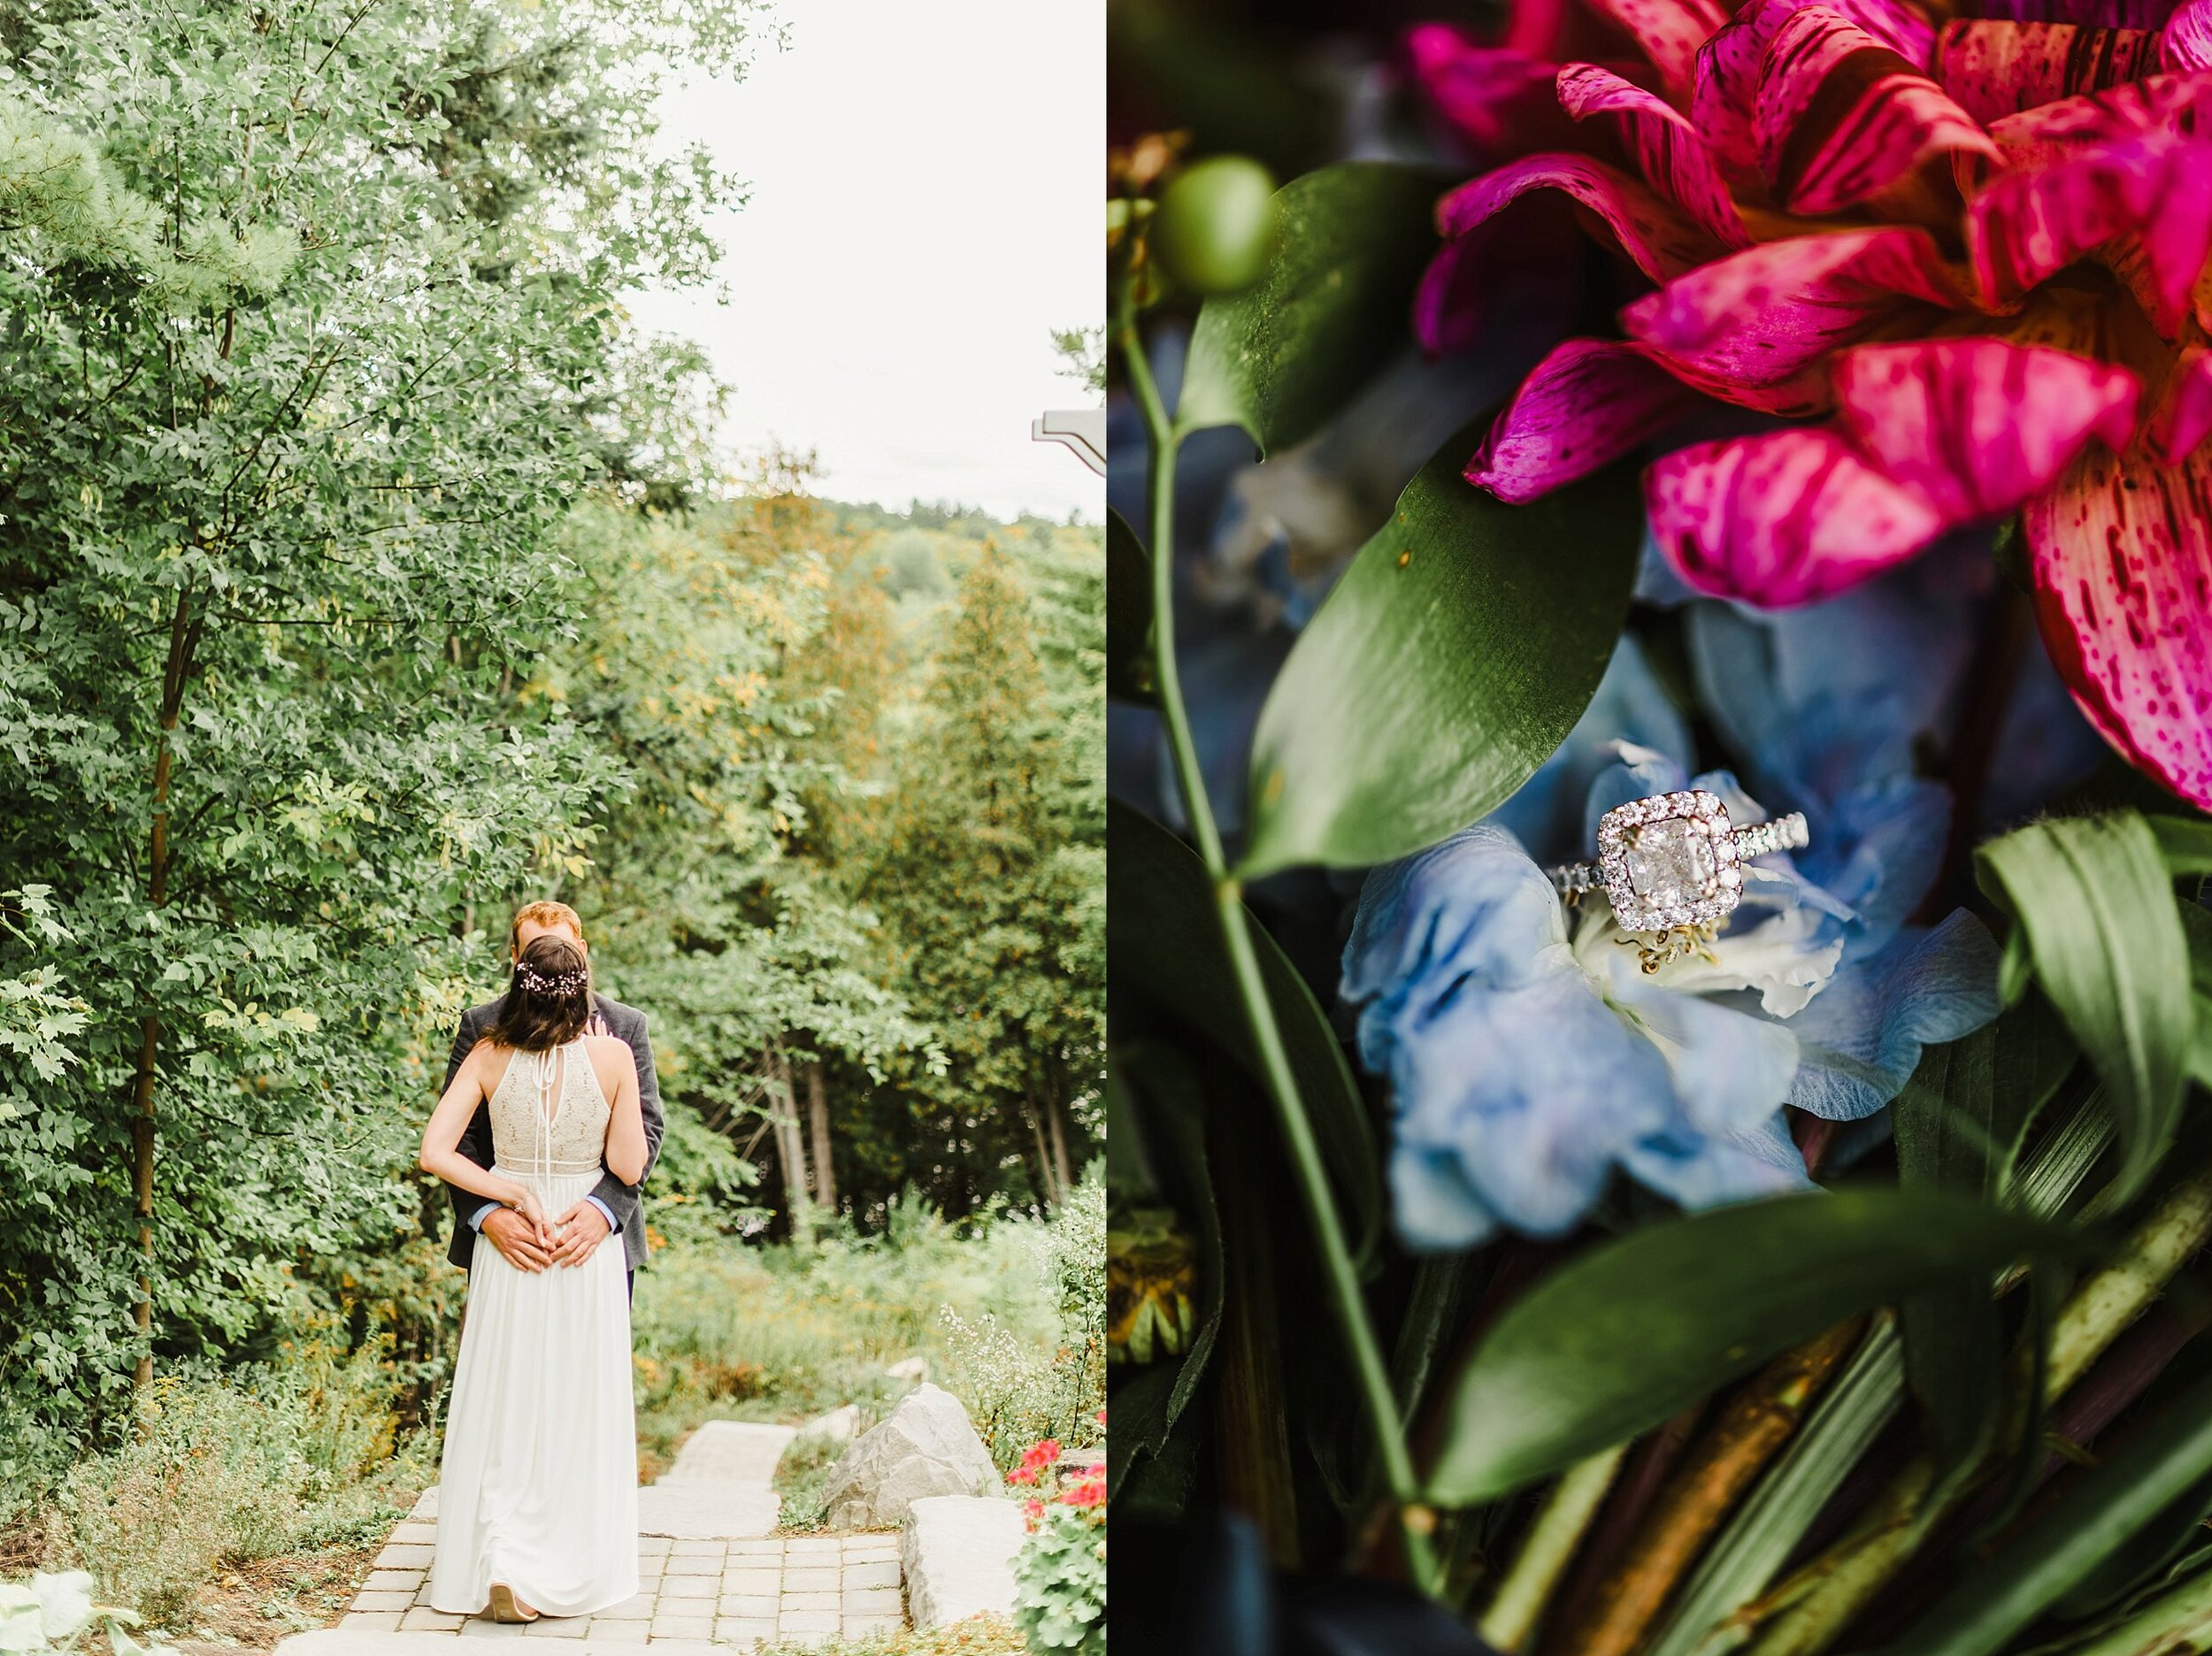 light airy indie fine art ottawa wedding photographer | Ali and Batoul Photography_1197.jpg